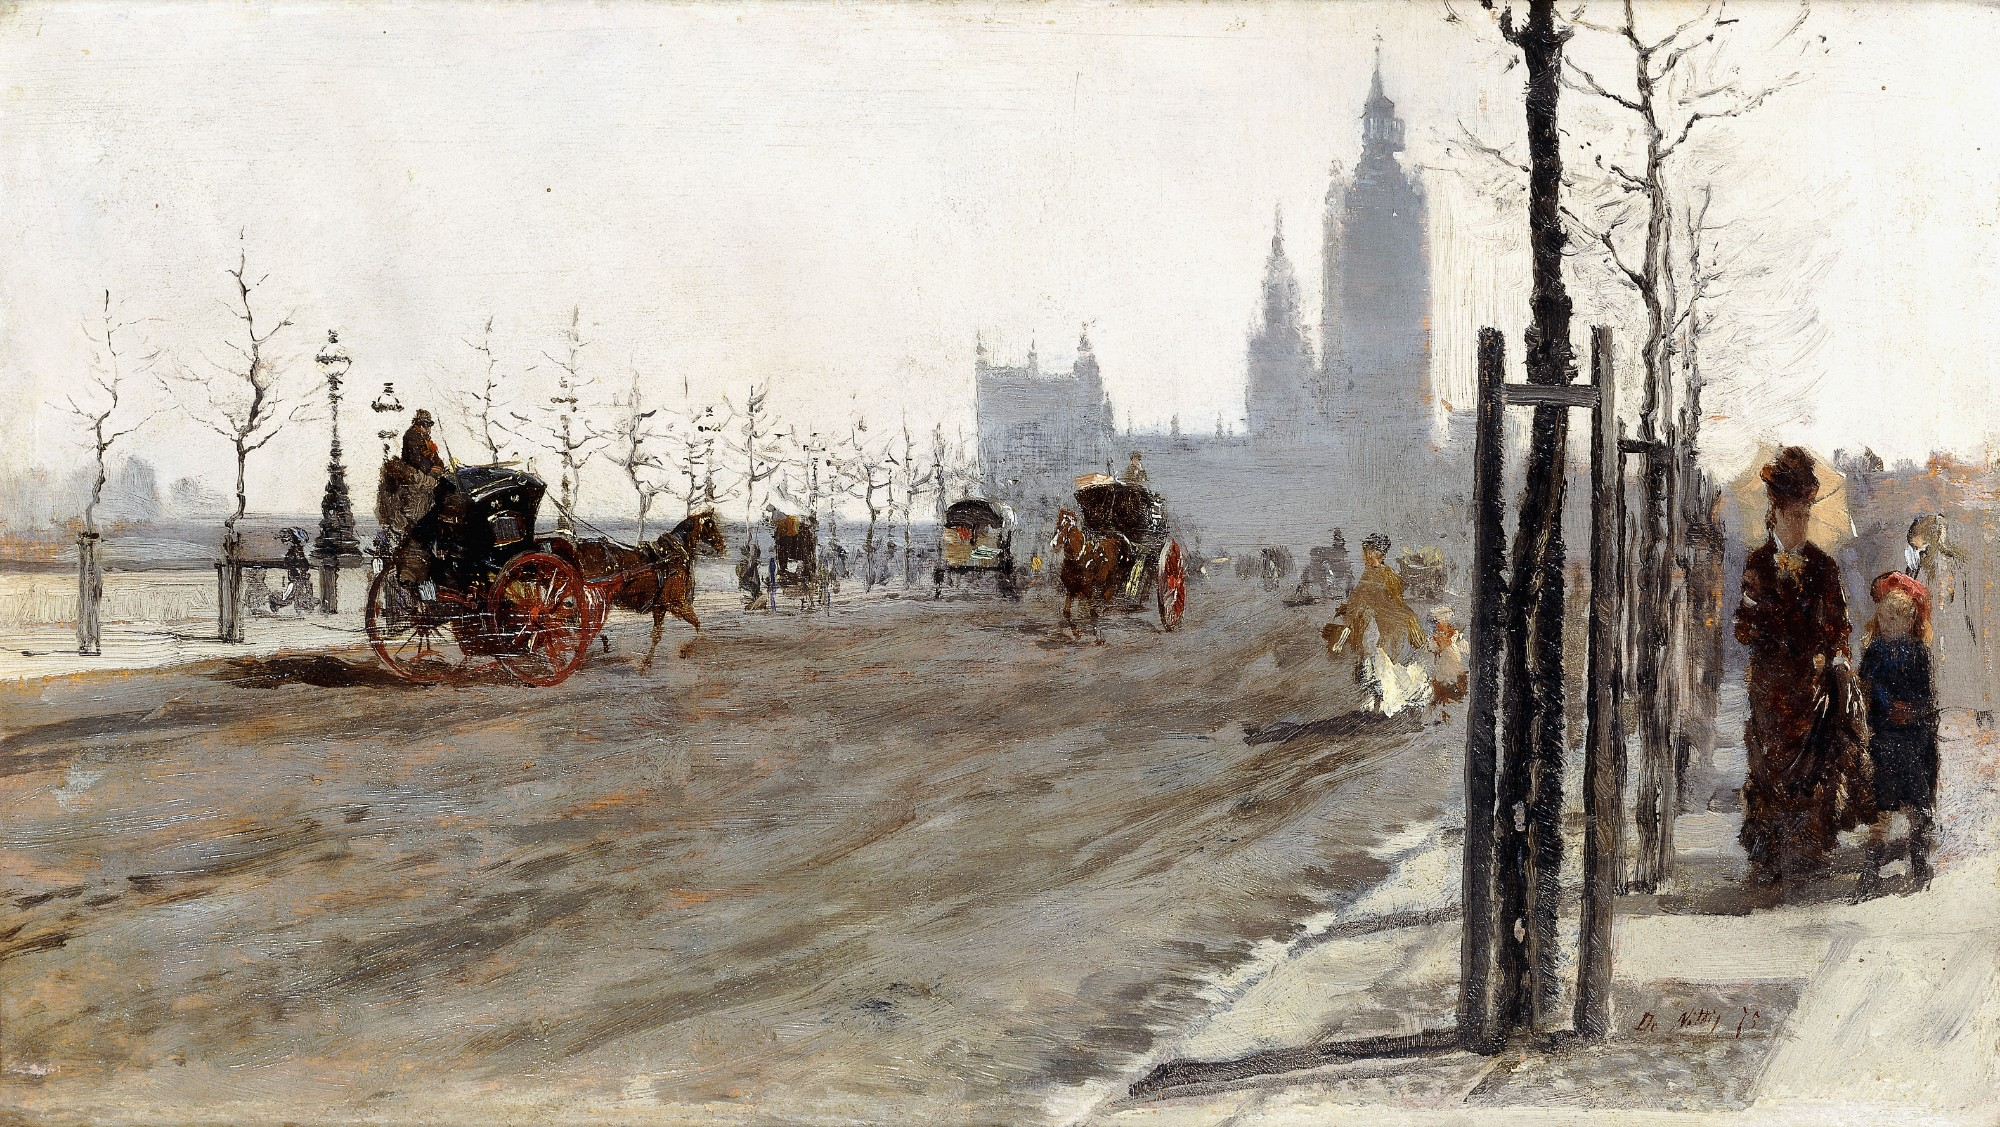 Giuseppe de Nittis (1846 – 1884) - The Victoria Embankment, London, 1875. Private collection